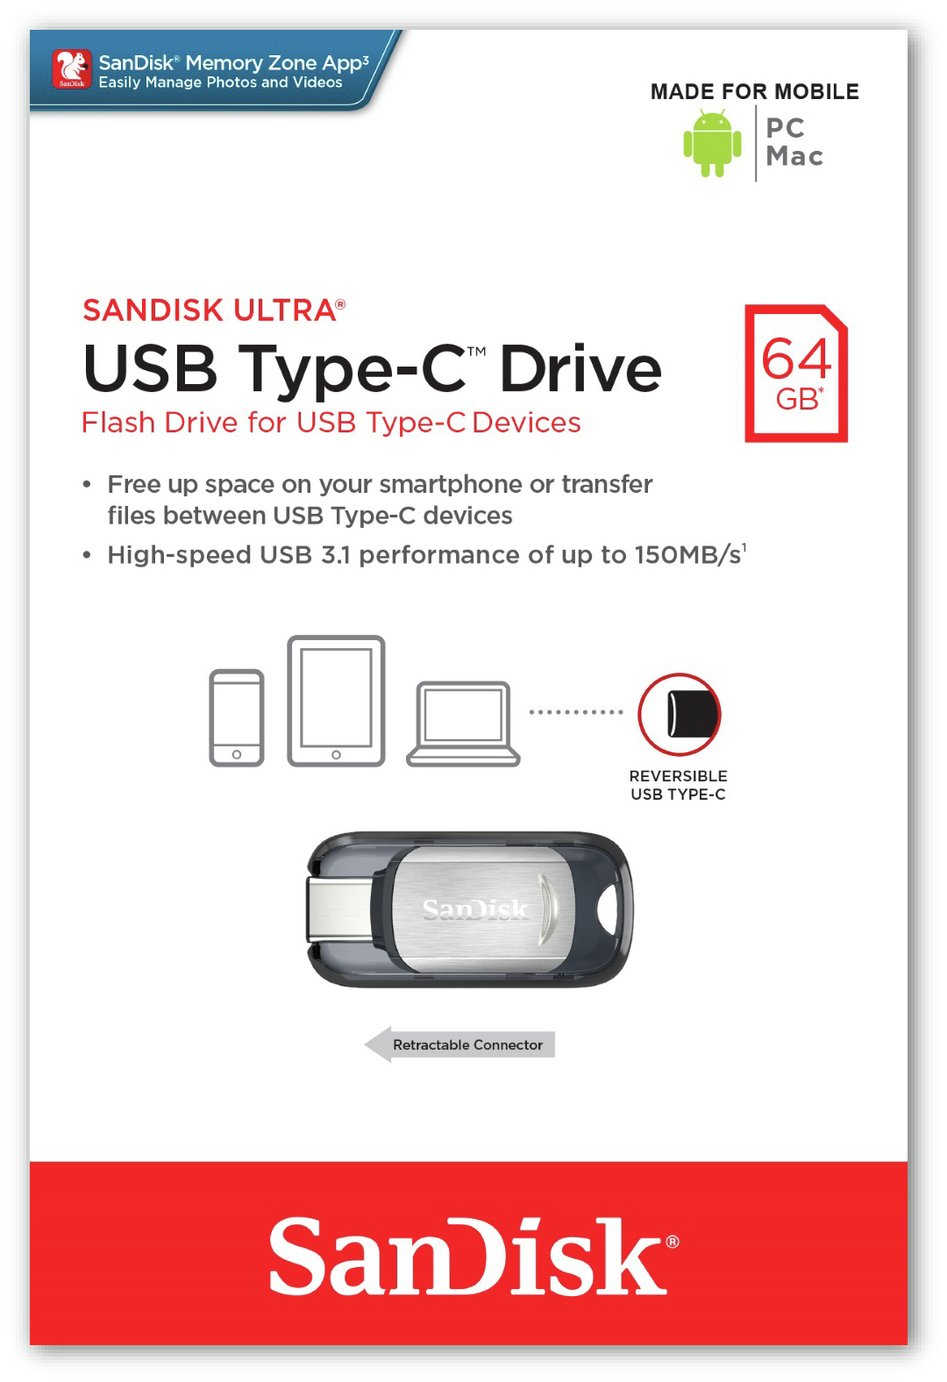 SanDisk Ultra Dual Flash Drive USB 3.0 Type-C - 64GB